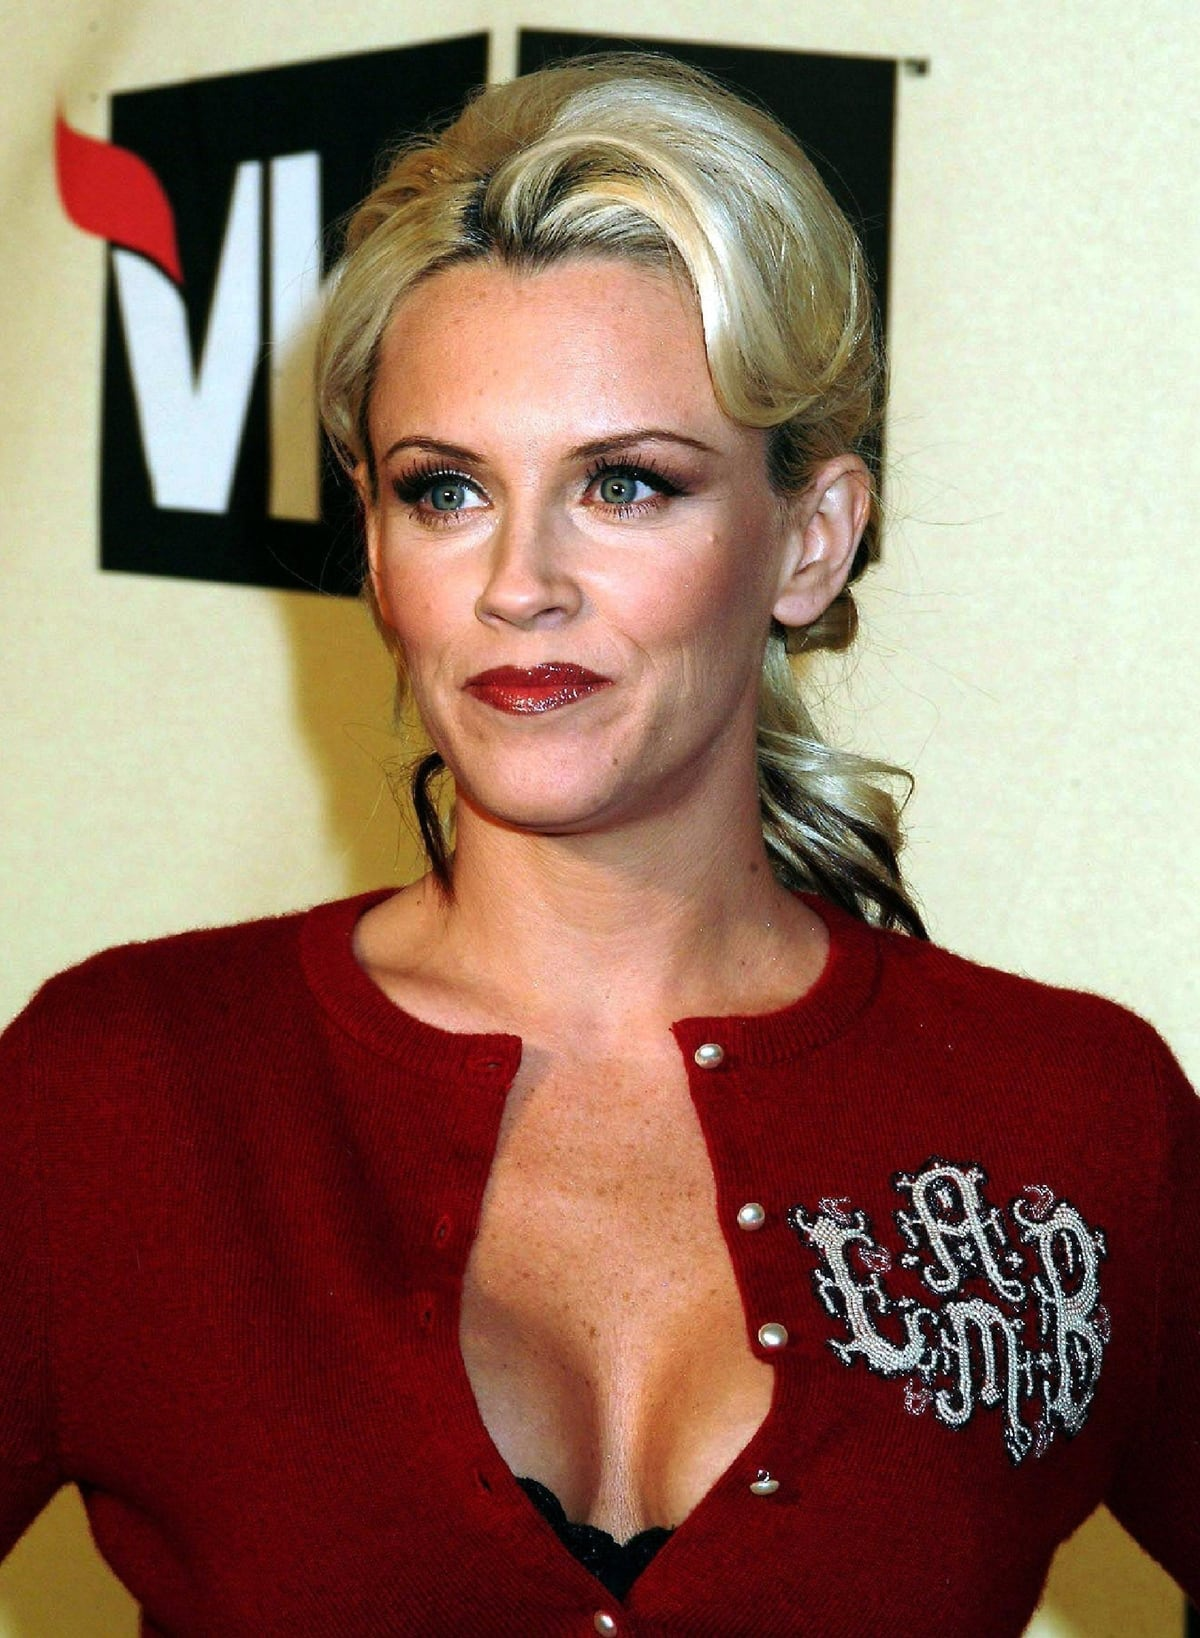 Jenny McCarthy had her first job done when she was 19